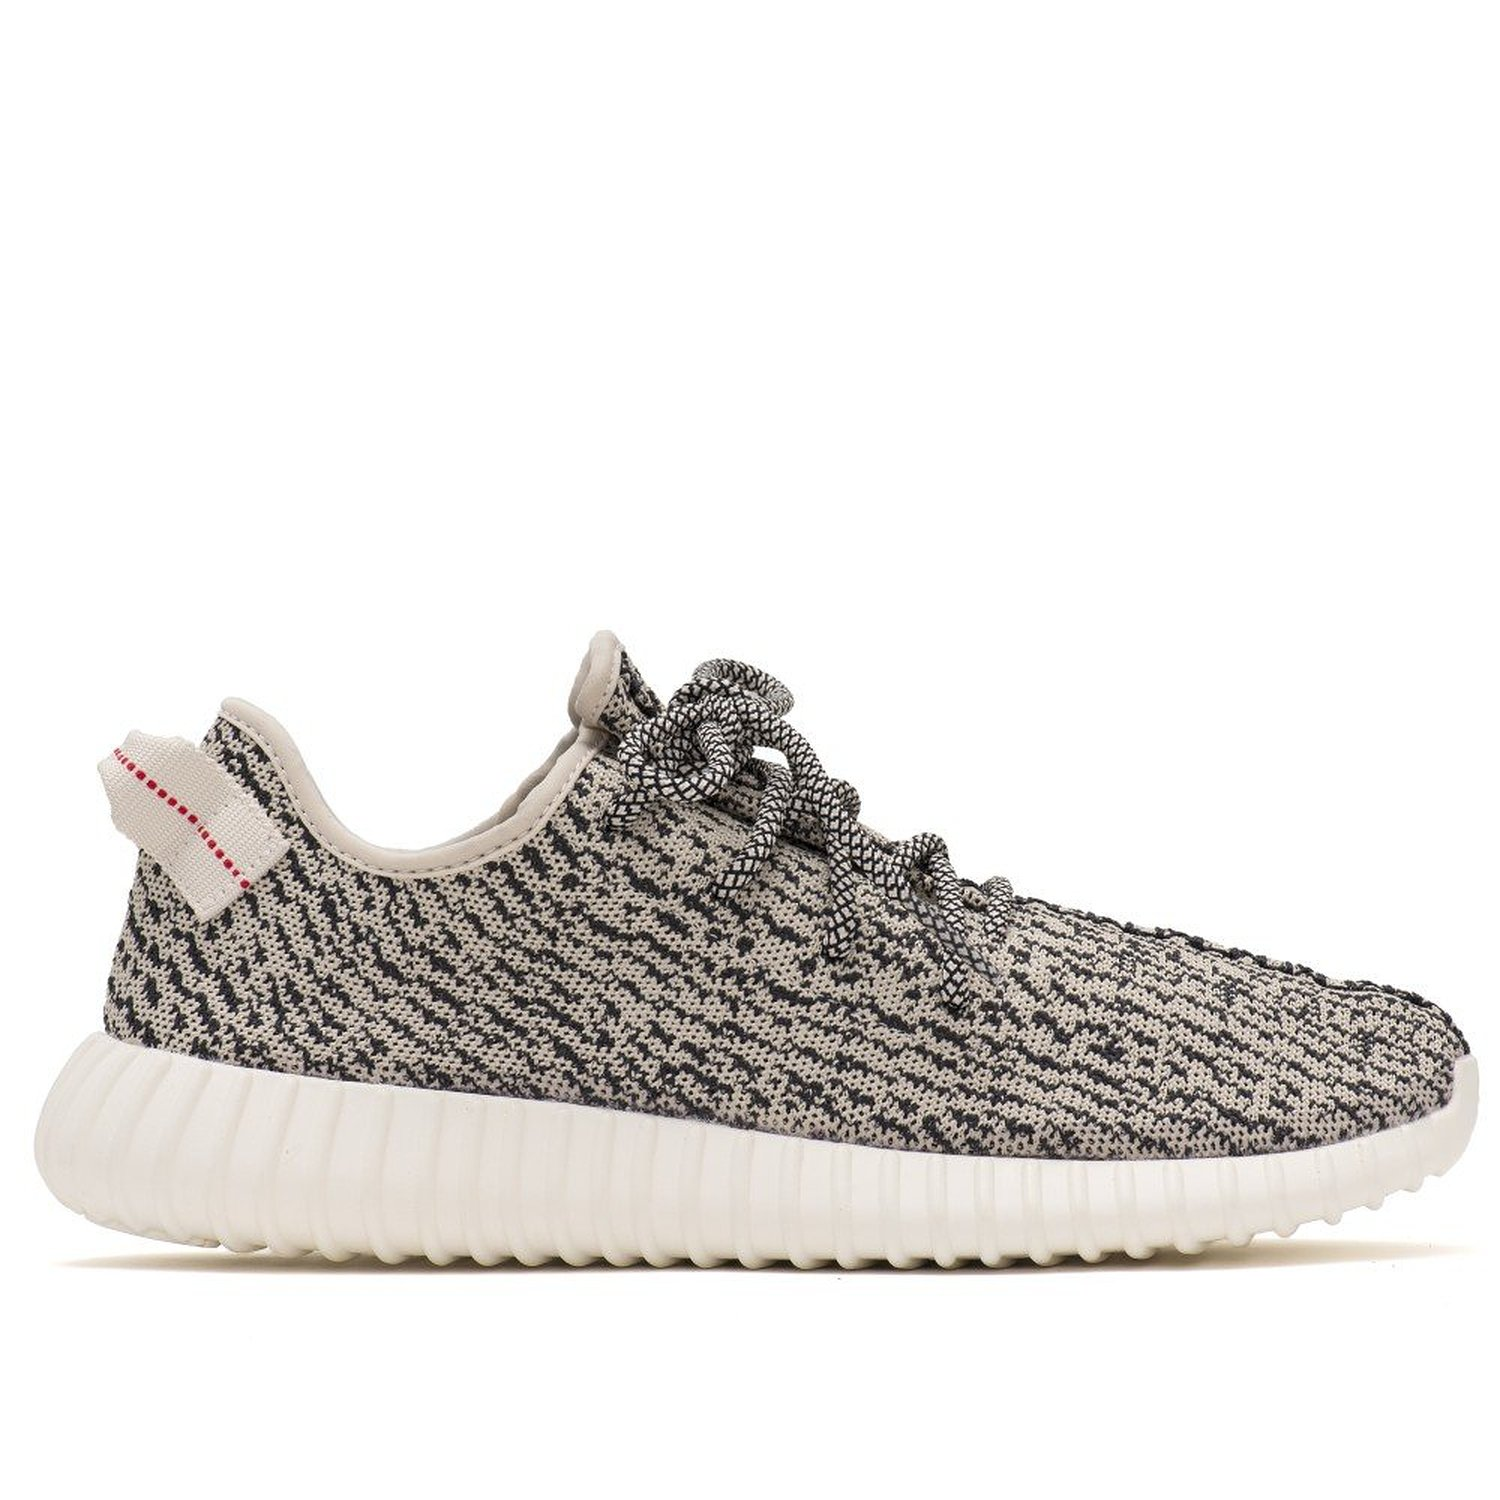 fbe37d8db73 Acquista adidas yeezy boost 350 v2 dorate amazon